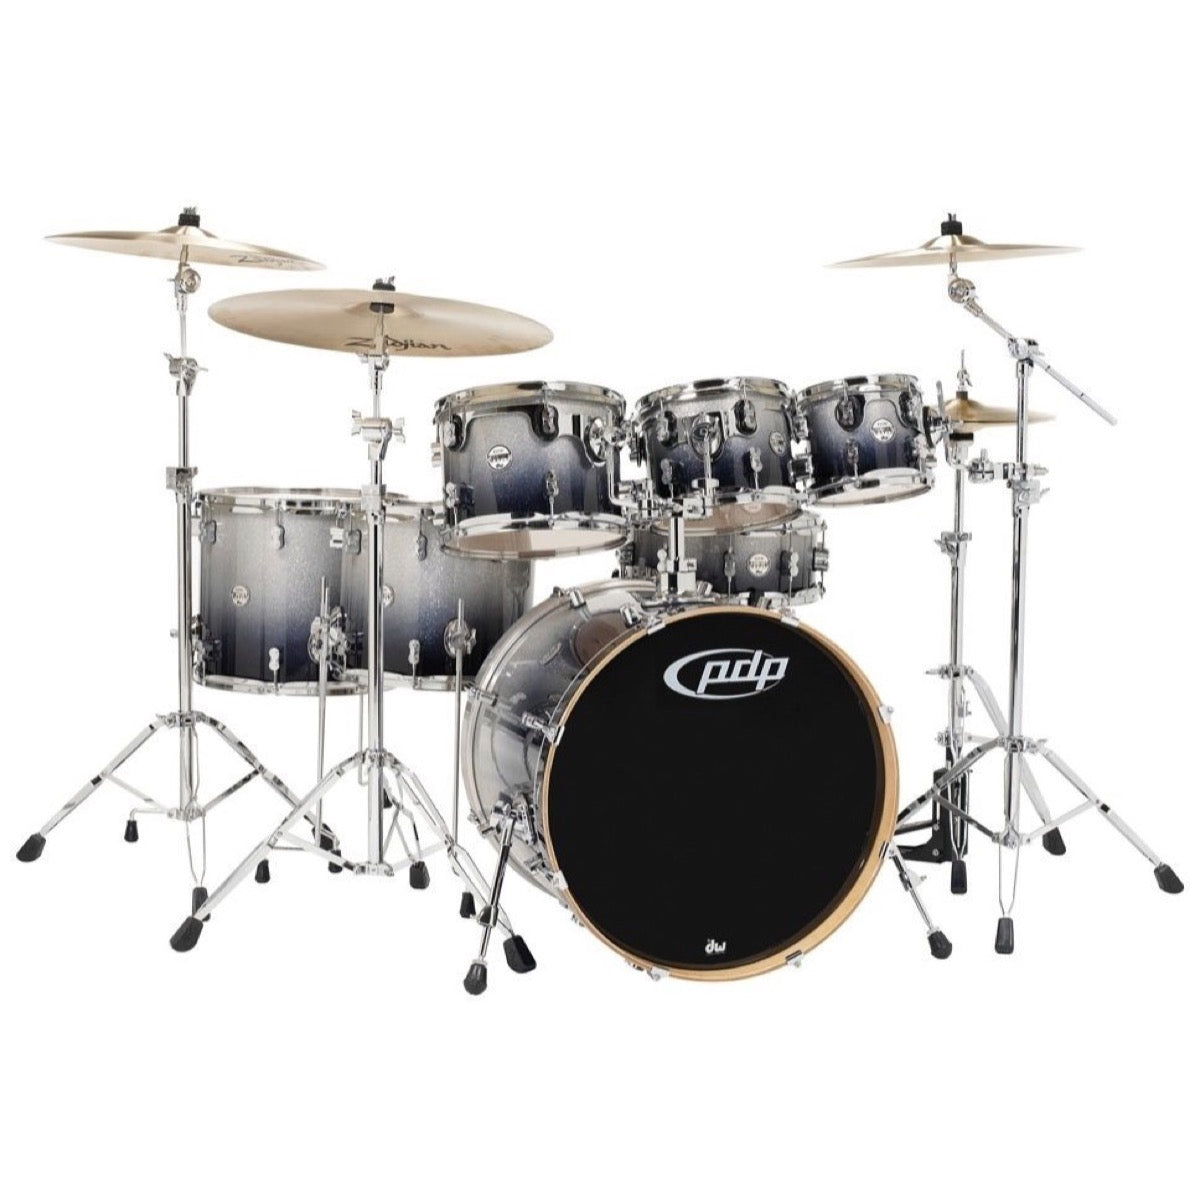 Pacific Drums Concept Maple Drum Shell Kit, 7-Piece, Silver to Black Sparkle Fade